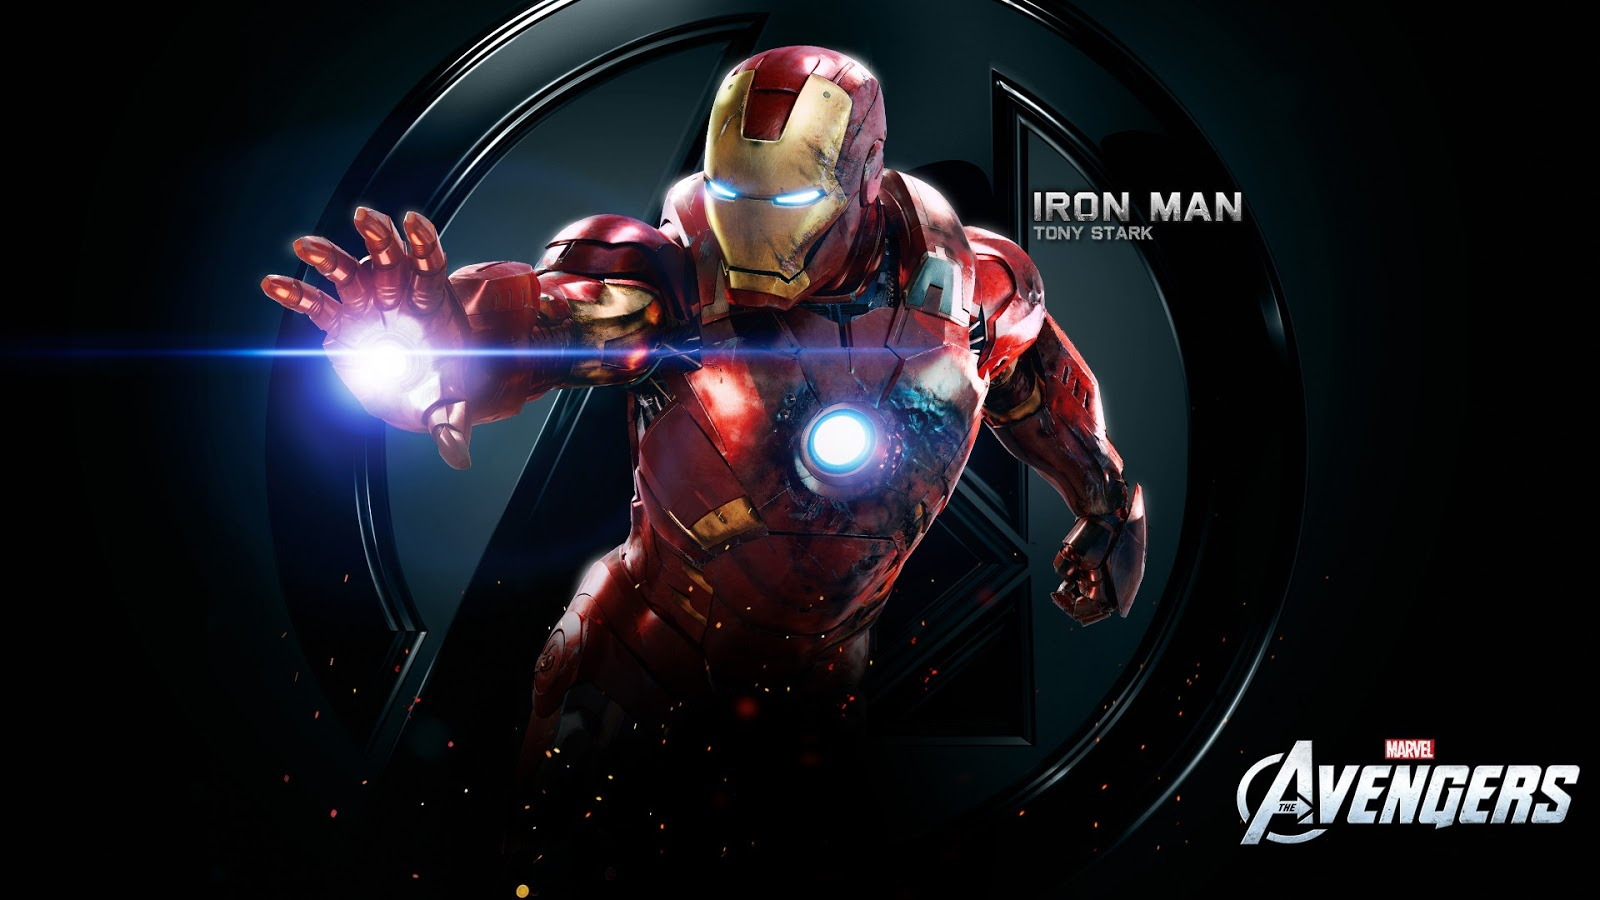 Iron Man Tony Stark in Movie Avengers Wallpaper HD